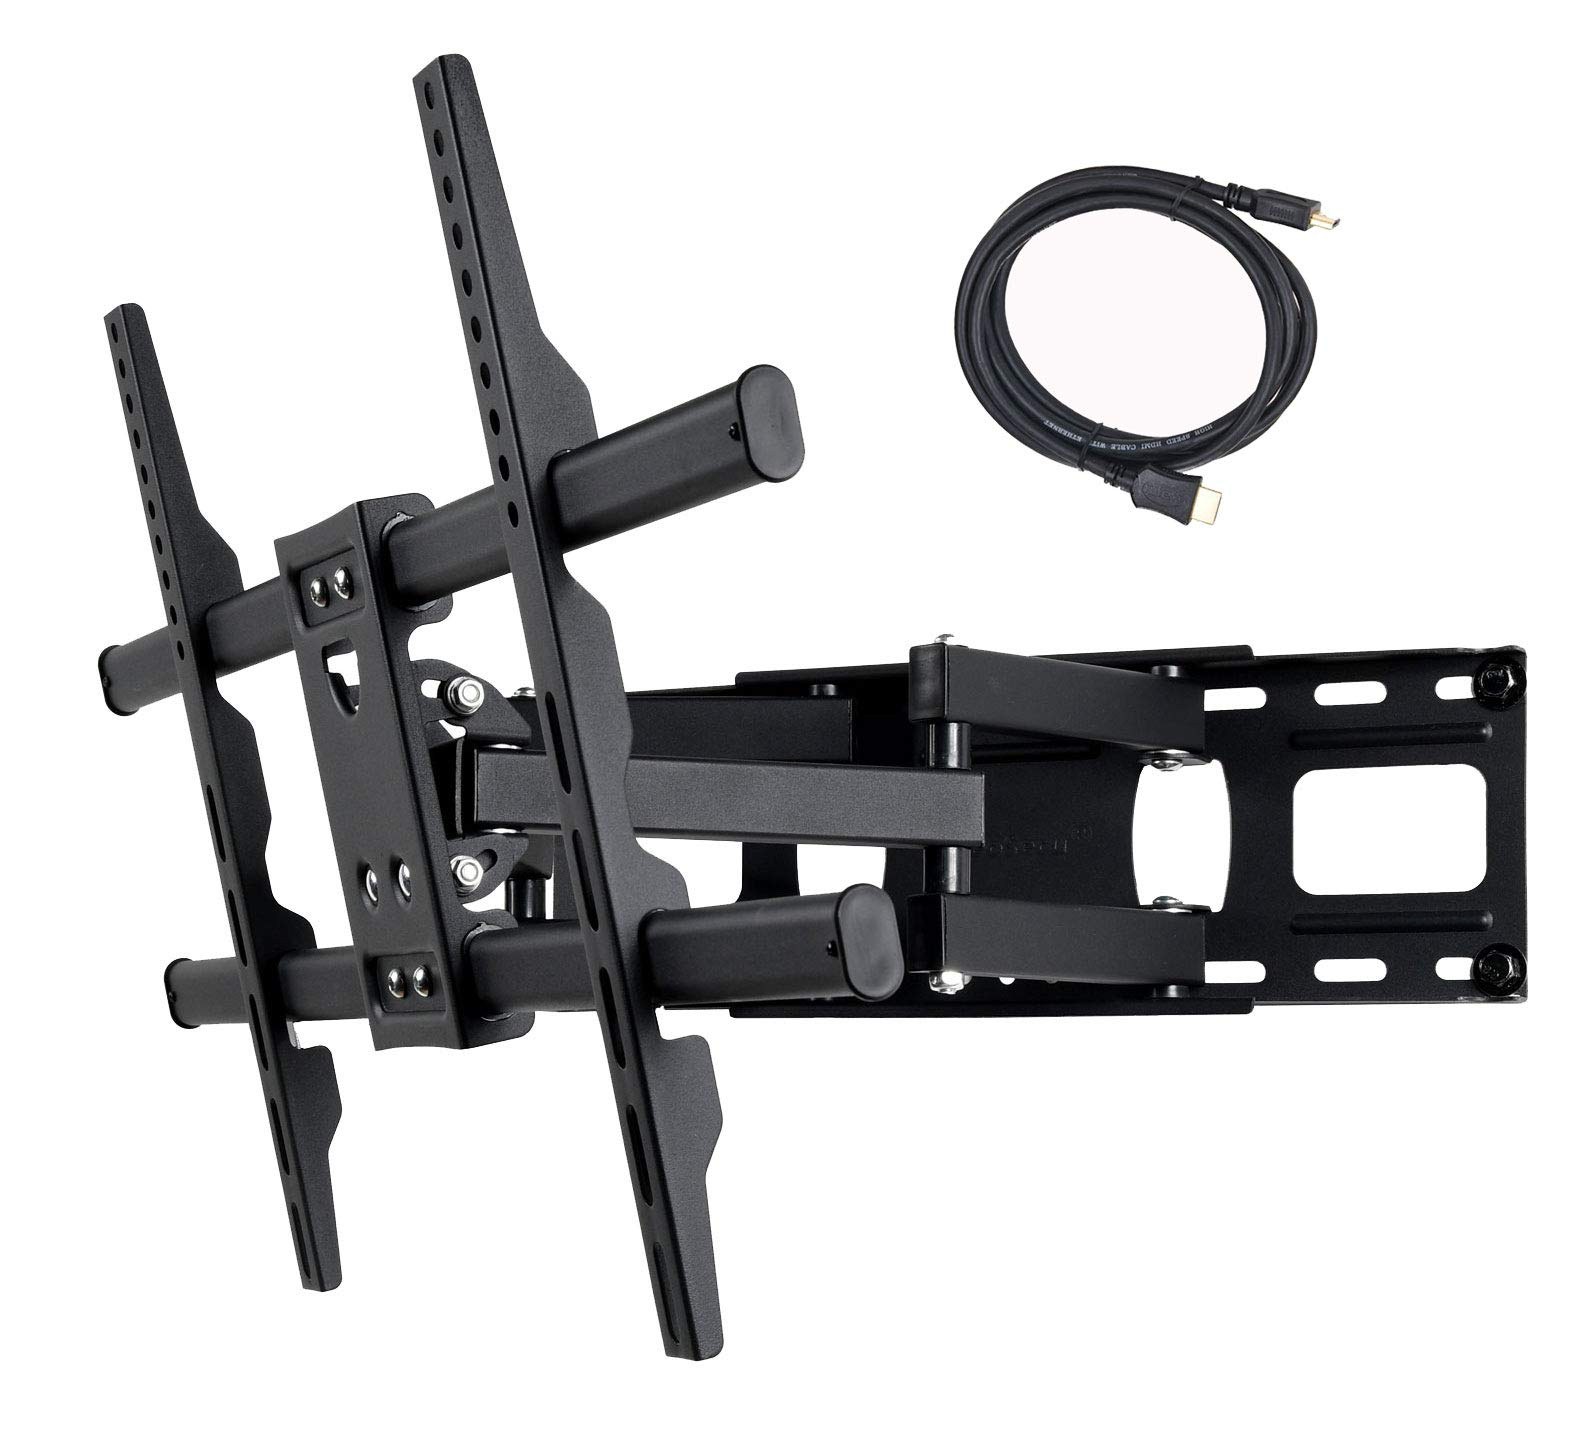 VideoSecu MW380B5 Full Motion Articulating TV Wall Mount Bracket for Most 37''-75'' LED LCD Plasma HDTV Up to 125 lbs with VESA 684x400 600x400 400x400 150x100mm, Dual Arm Pulls Out Up to 14'' AW9 by VideoSecu